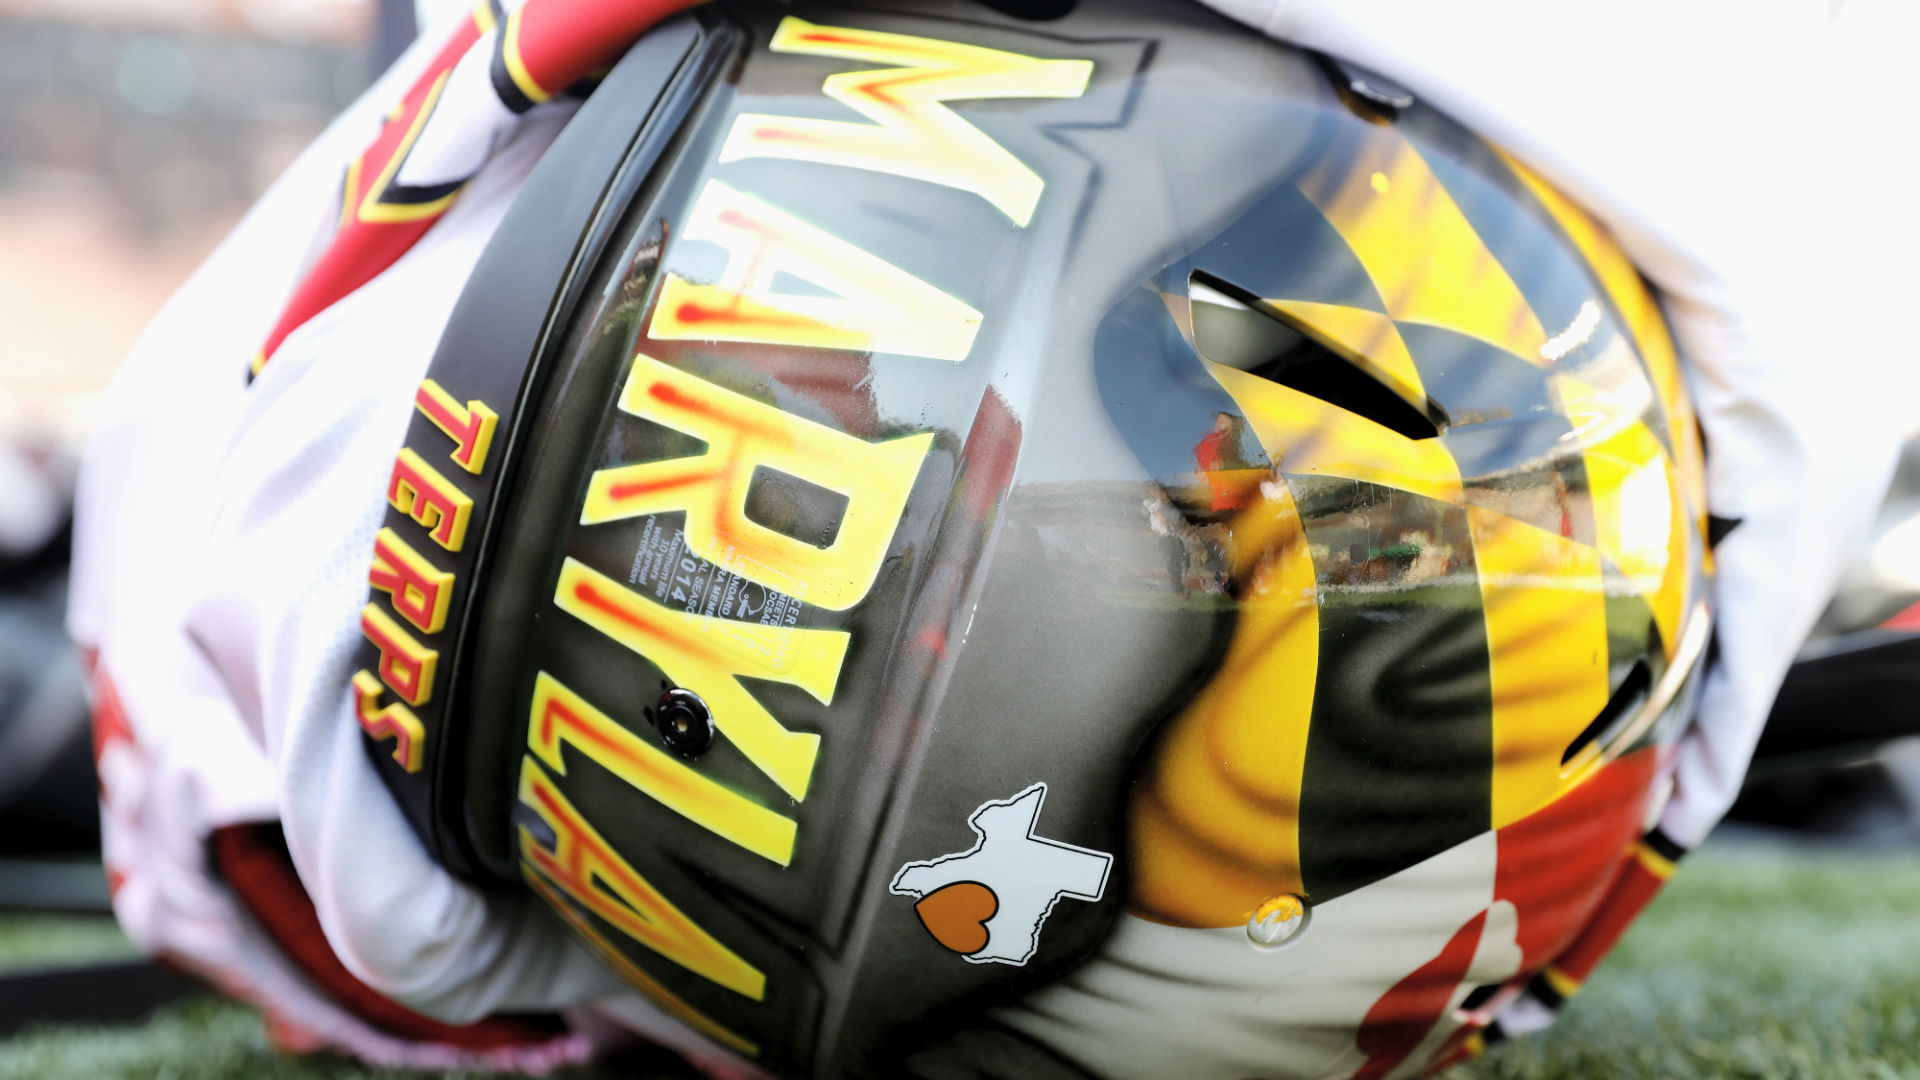 Maryland football players dispute reason for fight at practice following DJ Durkin's return